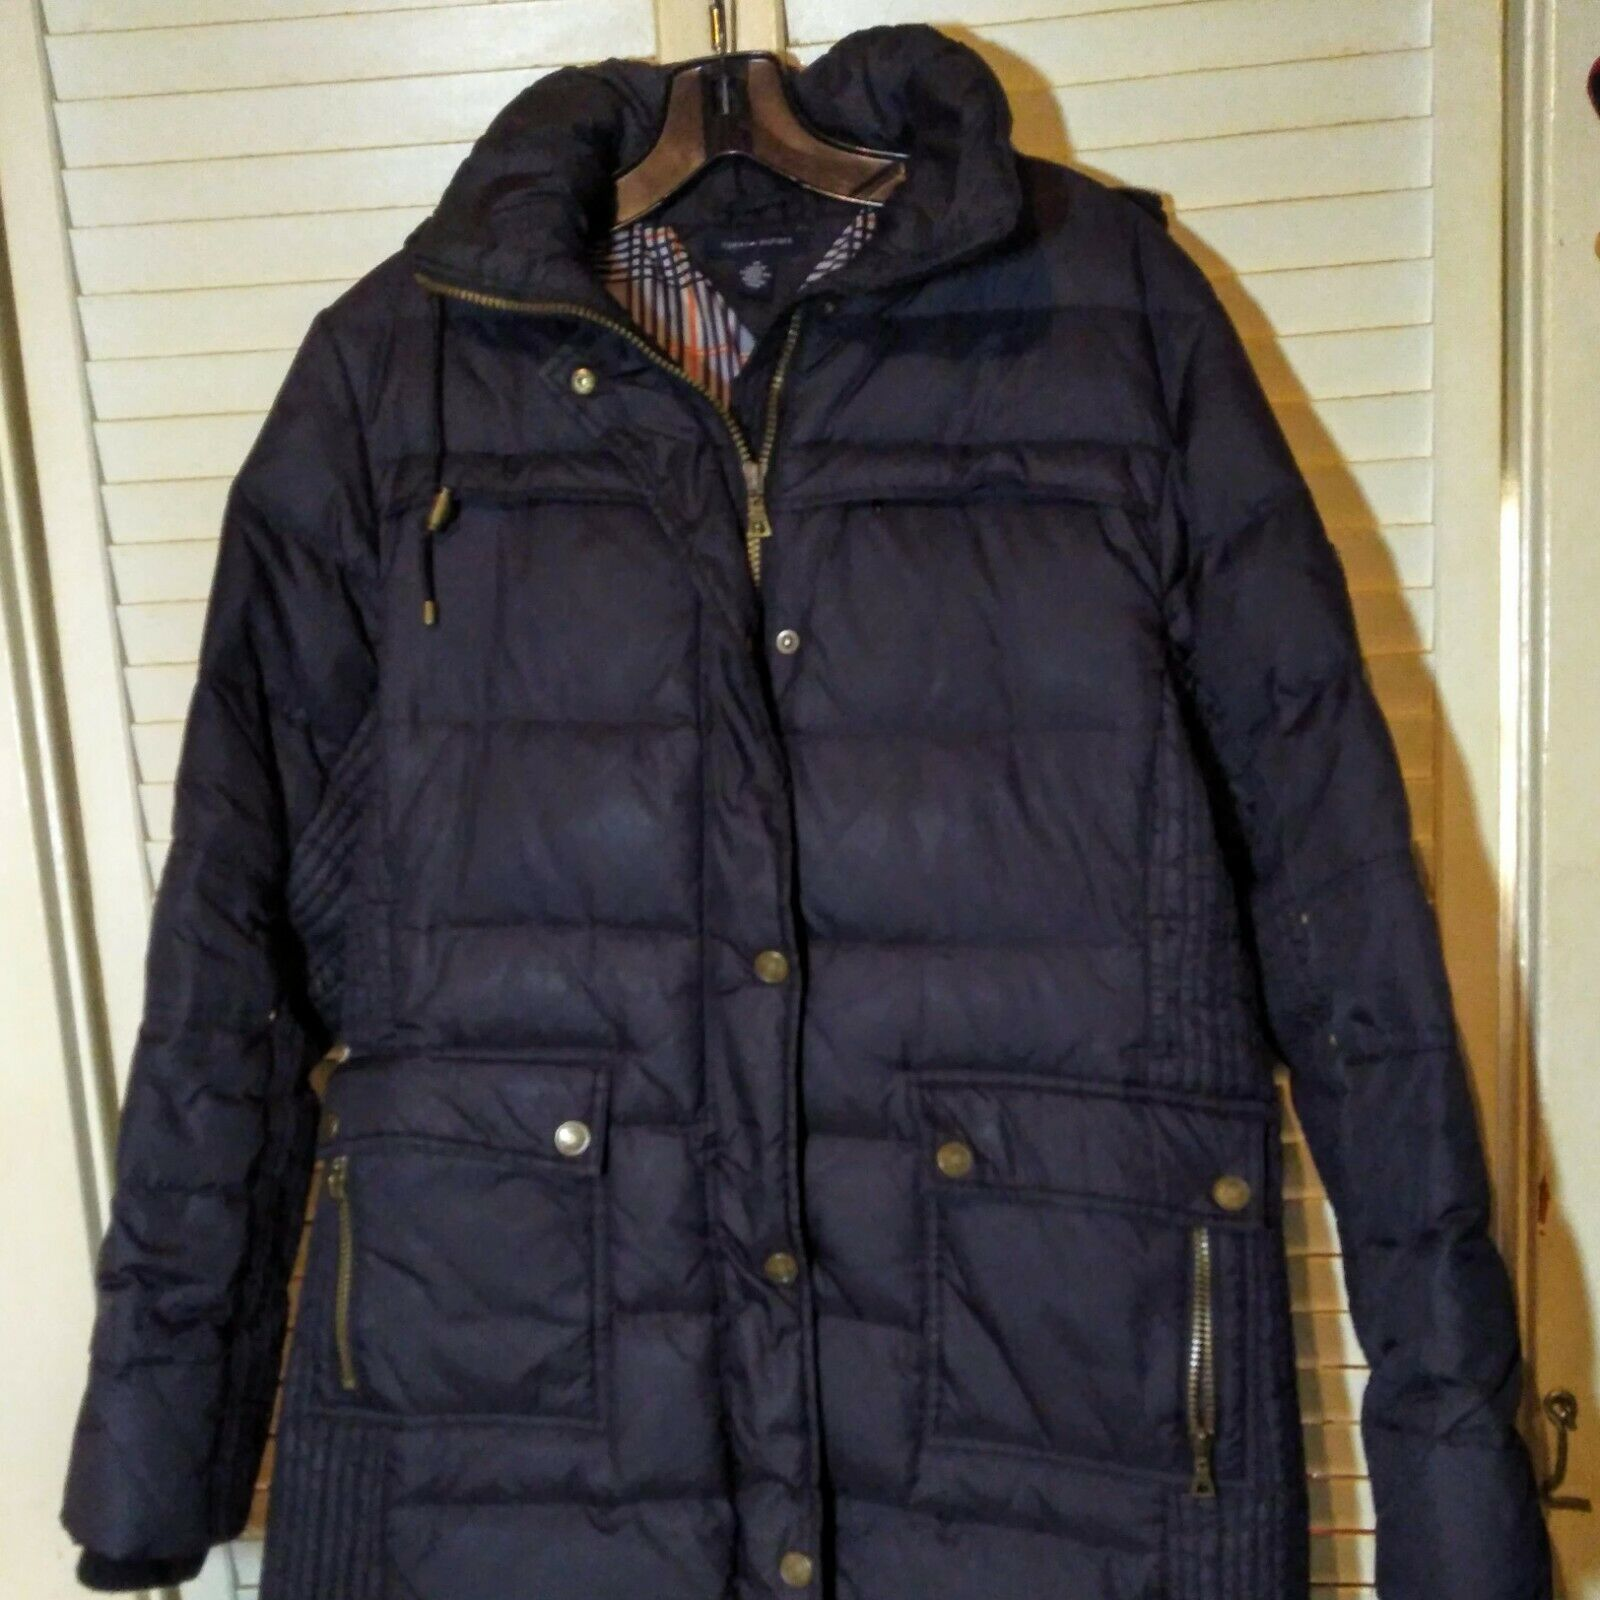 Primary image for Women's Tommy Hilfiger Quilted Hooded Long Jacket Down Puffer Coat SZ M